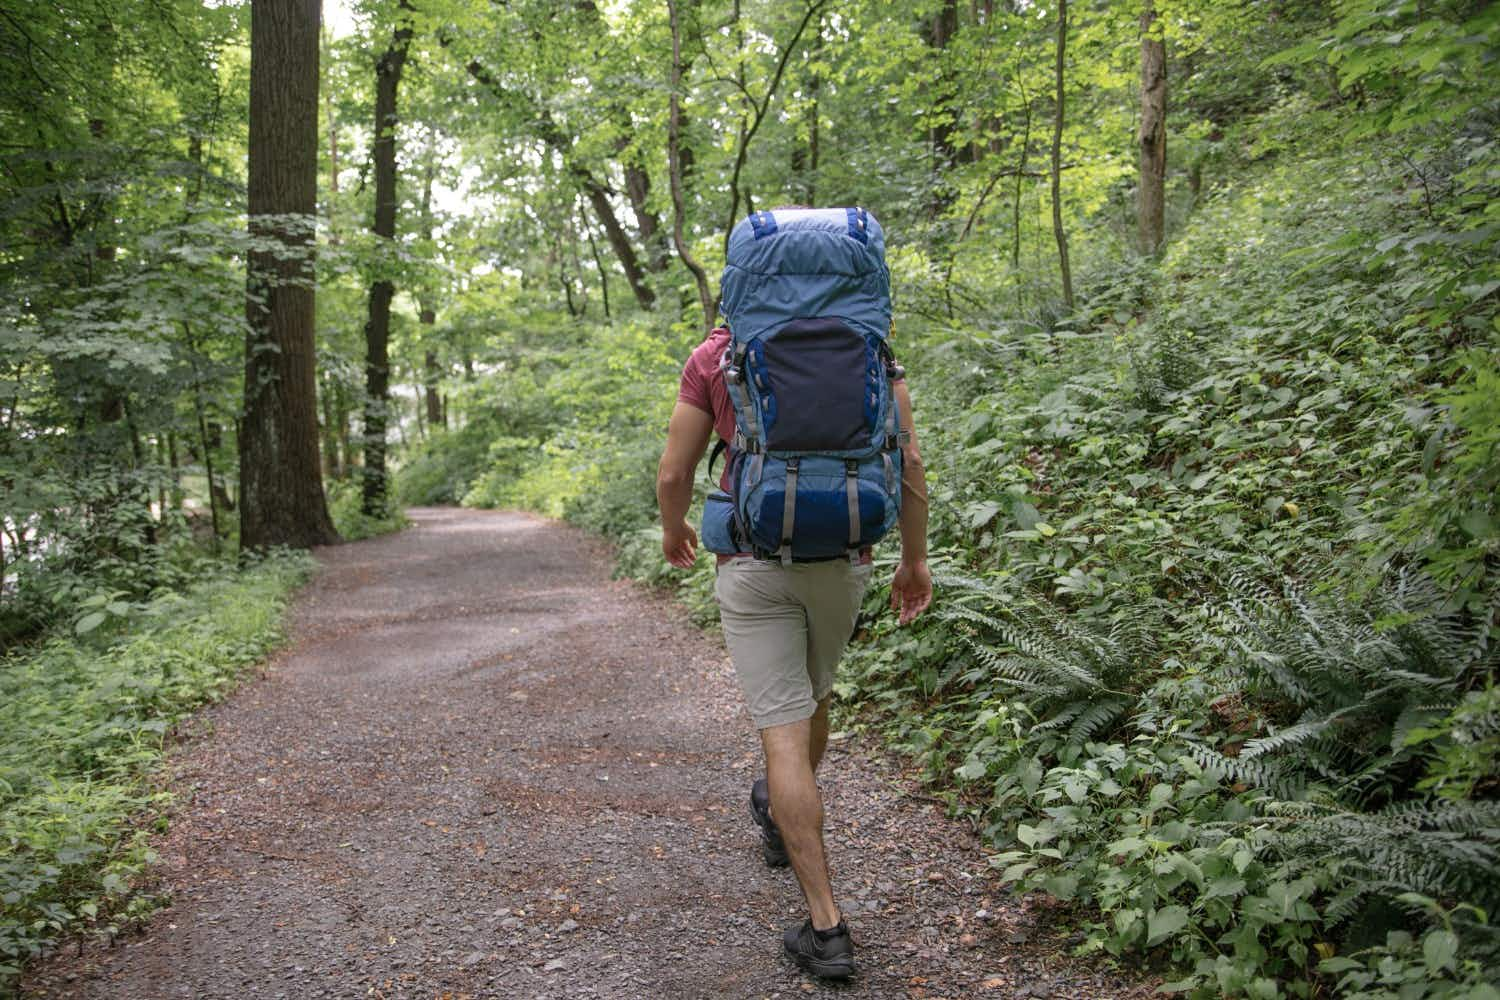 This 'floating' backpack will dramatically reduce impact on users while walking or running